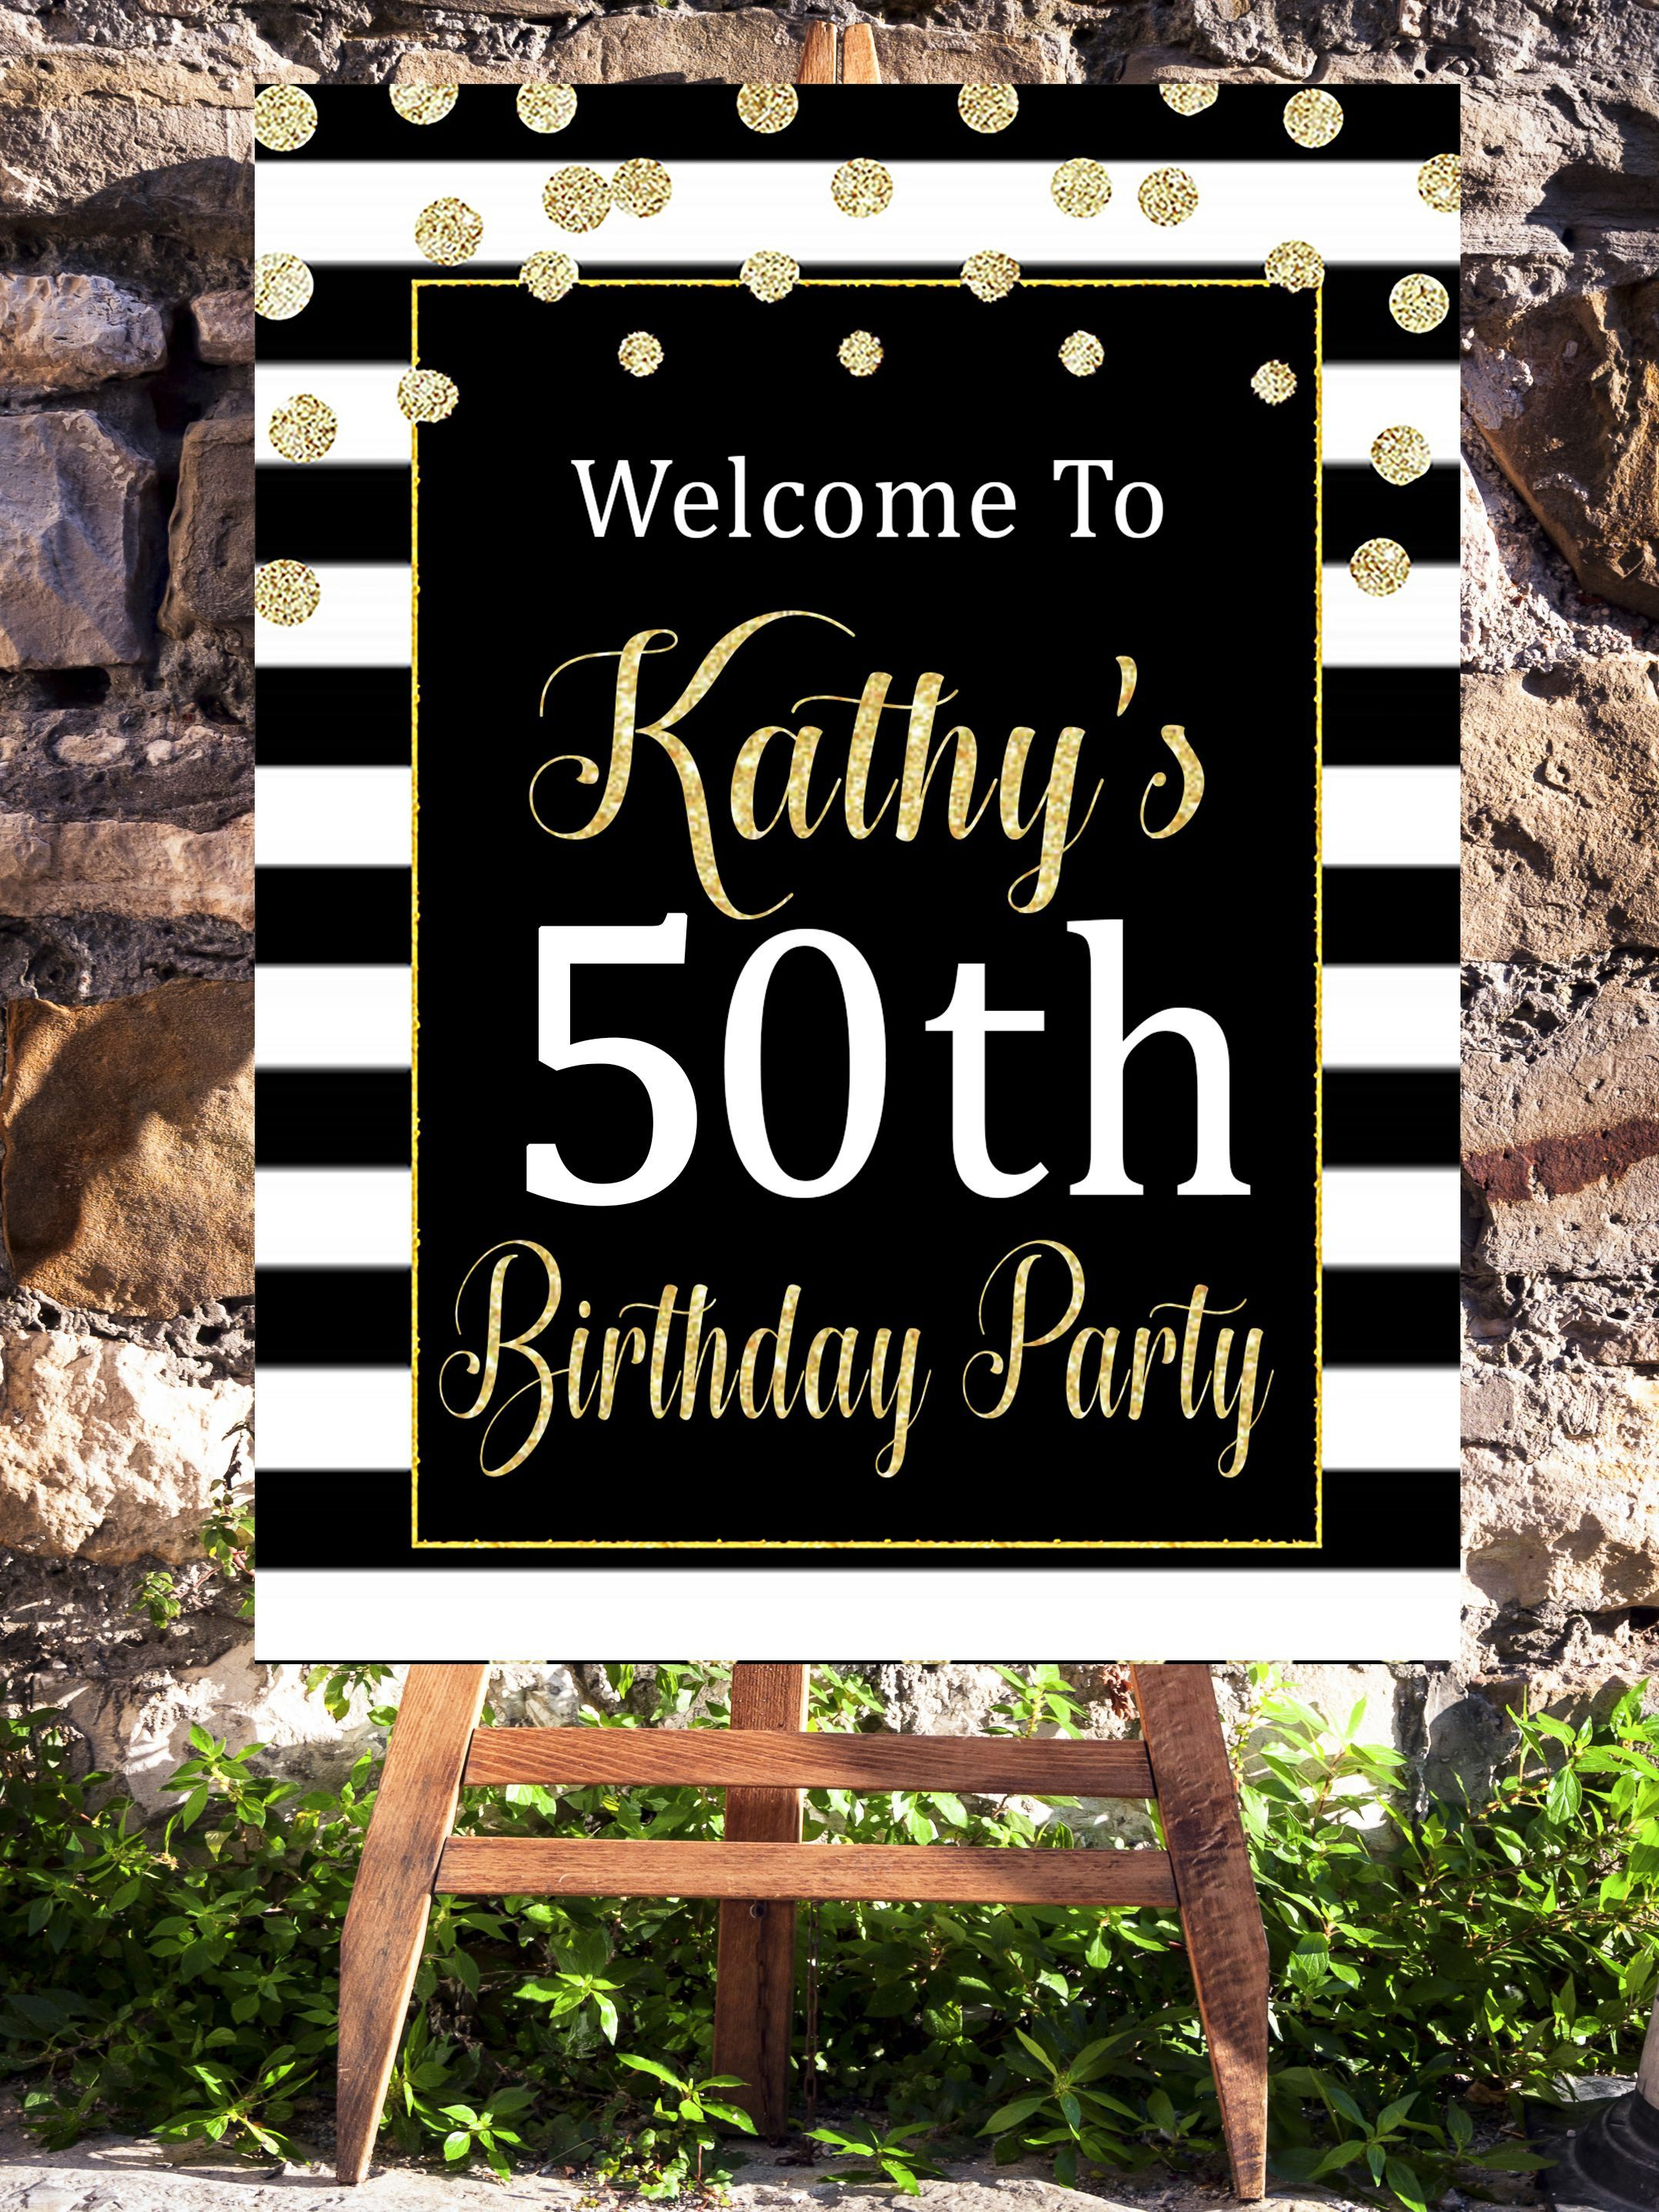 50th and fabulous birthday Decorations/ 50th birthday party printables #birthday , #birthdayparty , #party, #partyideas , #partydecor #50thbirthdaypartydecorations